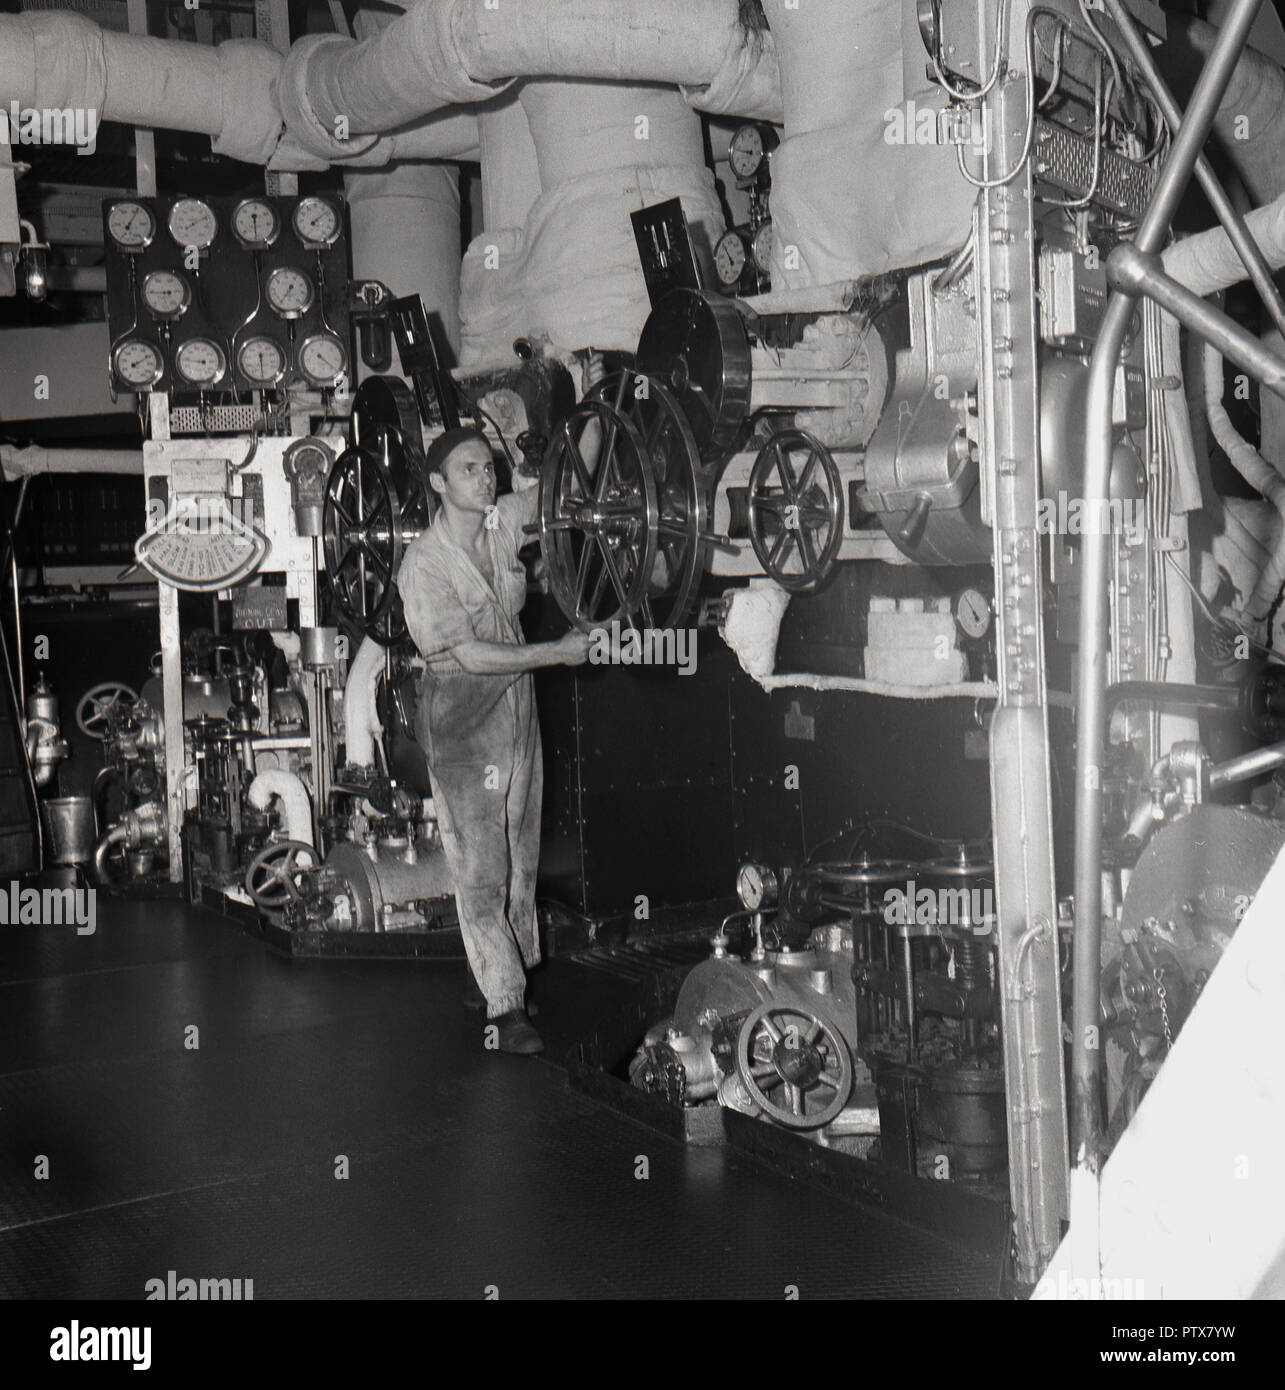 1950s, historical, seaman or oiler turning a wheel while working below deck in the engine room of a steamship. An area of complicated machinery and pressure systems wokring together to move the ship, the technician is a vital member of the ships' crew. - Stock Image